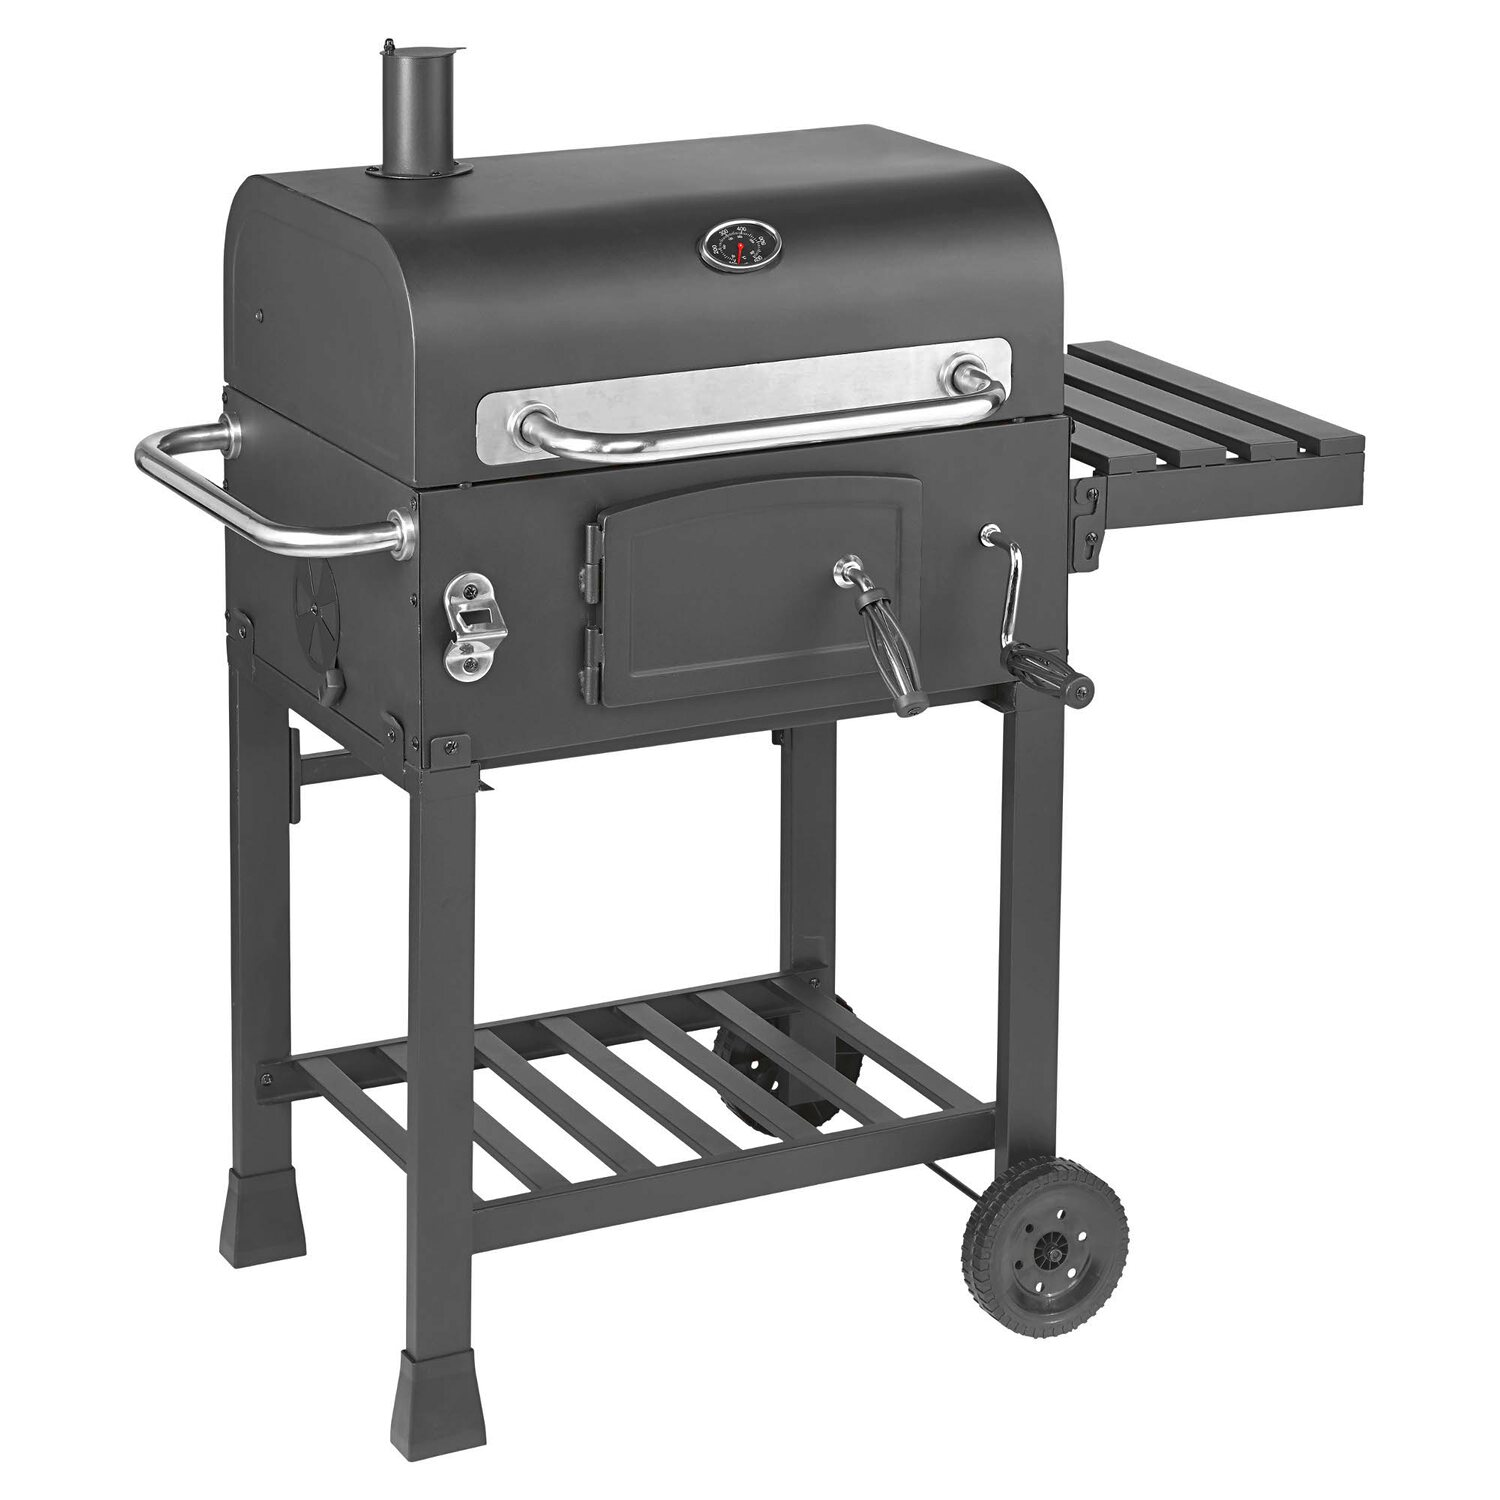 jamestown grill grill stalowy american charcoal bbq 102 cm On jamestown grill